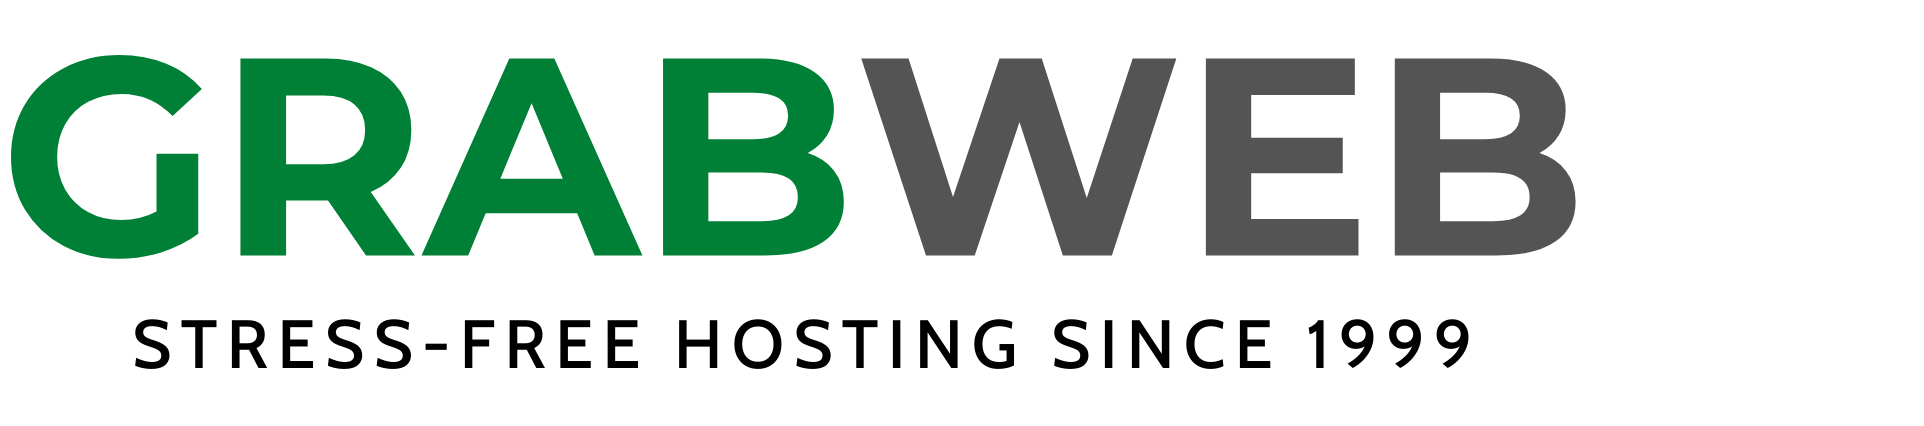 We offer Managed Cloud Hosting, Dedicated Servers, Shared Hosting, Wordpress Hosting, Reseller & SSL Certificates